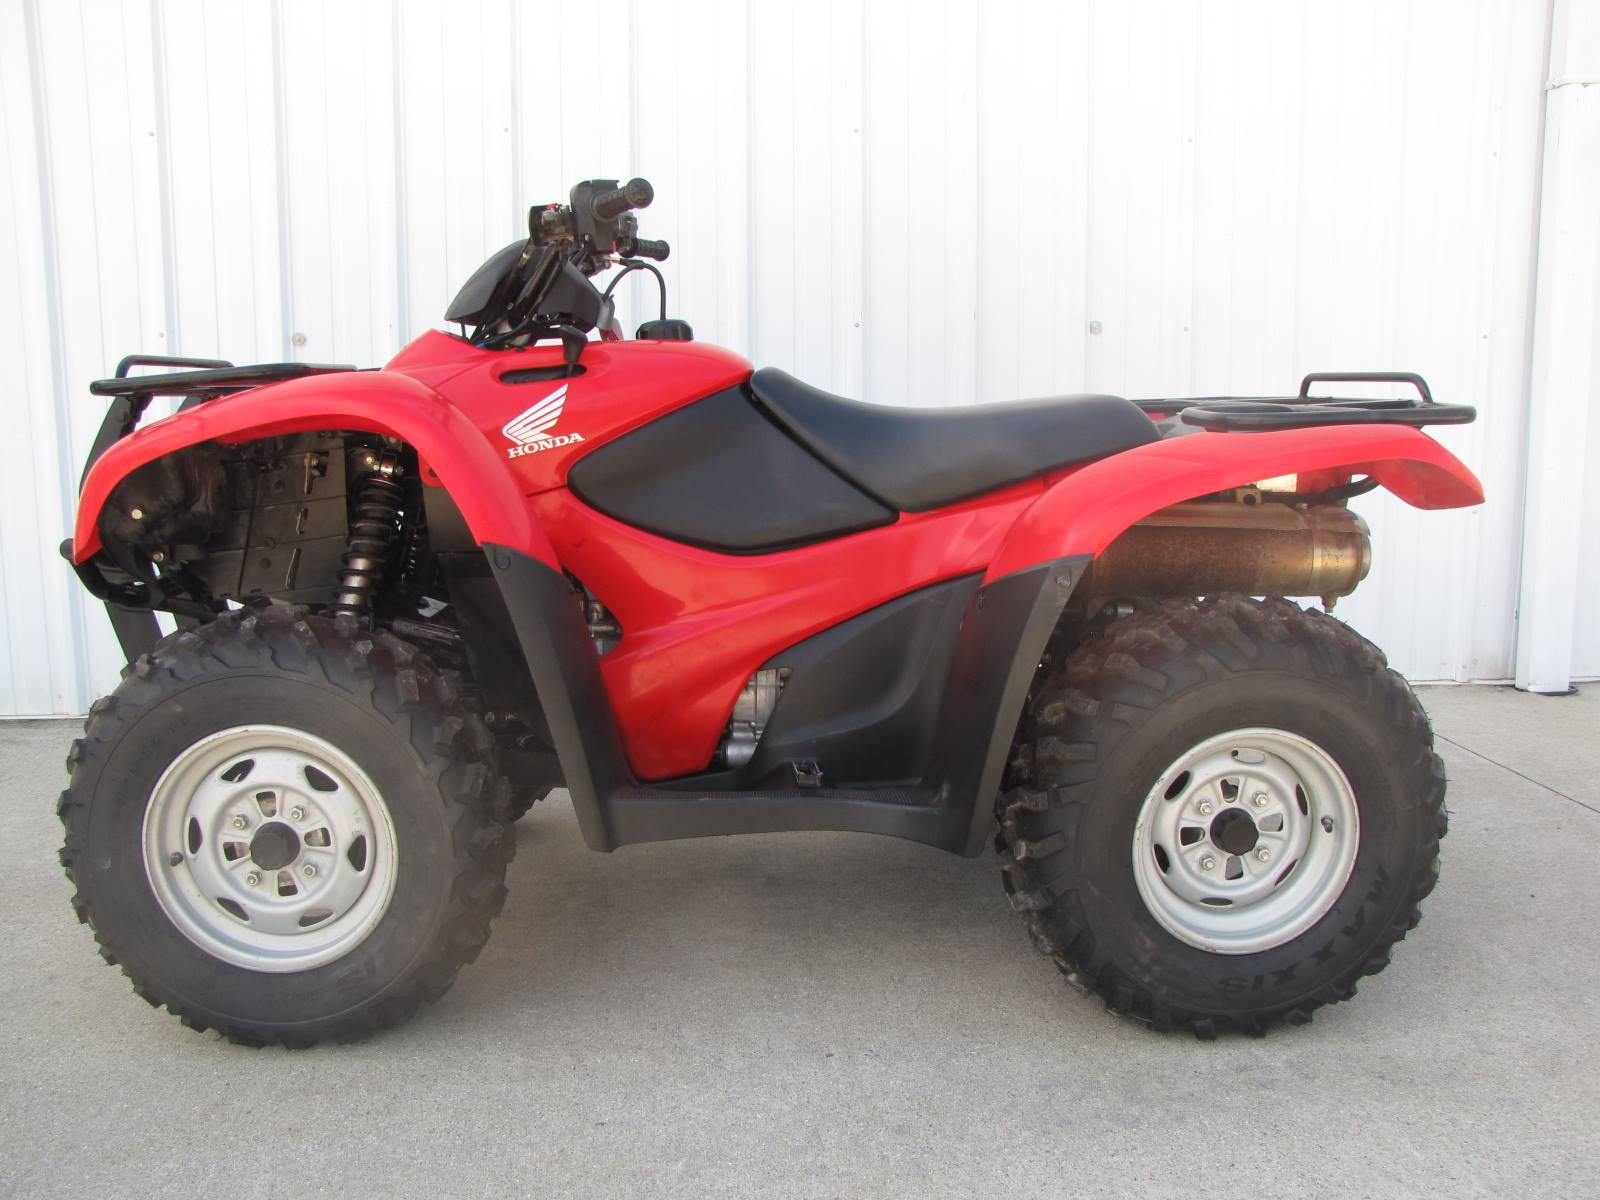 2012 FourTrax Rancher AT